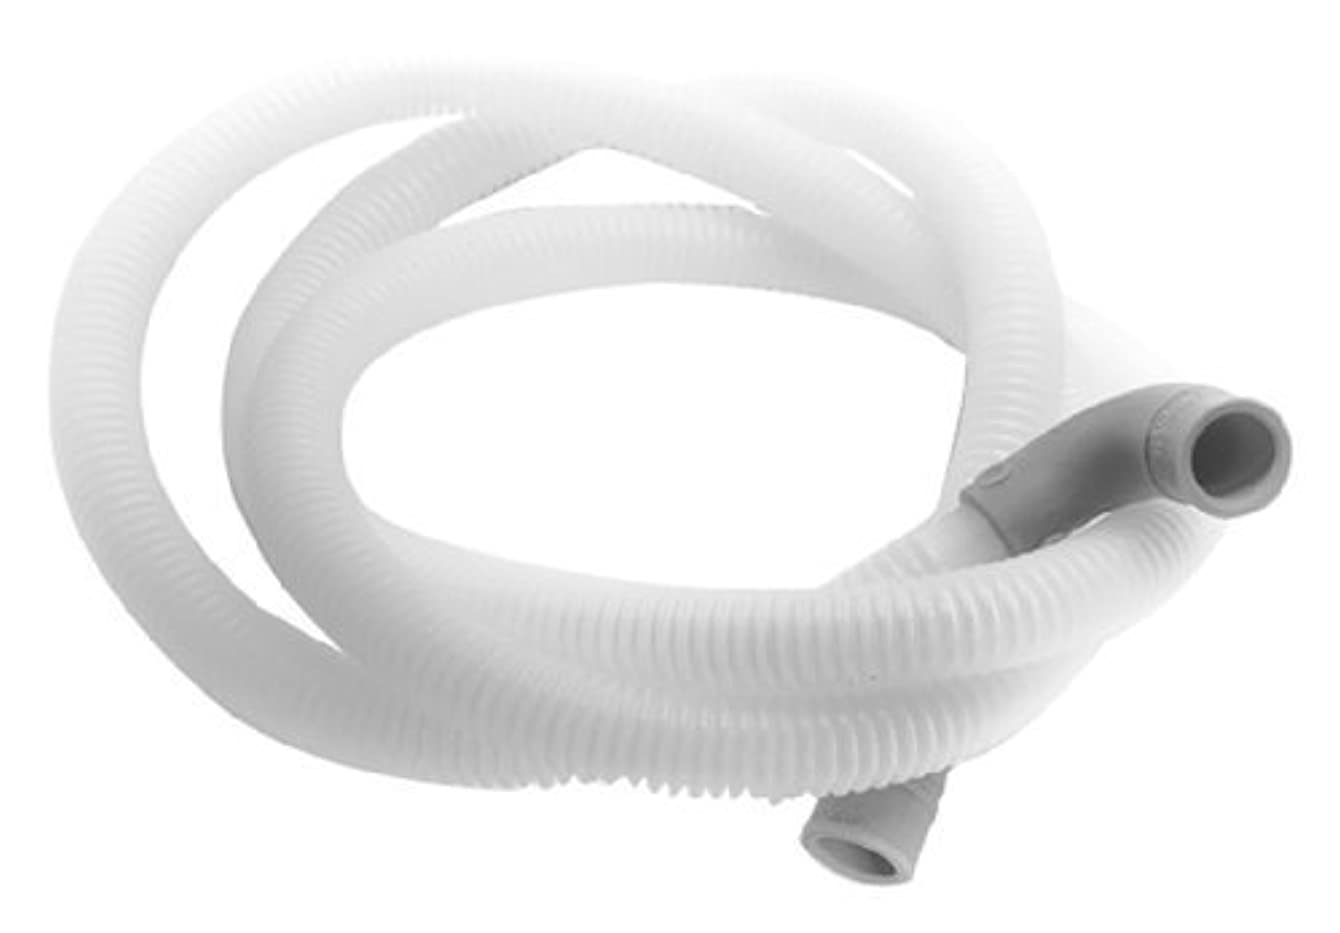 Bosch 668108 Drain Hose for Dish Washer Model: 668108 Tools & Home Improvement